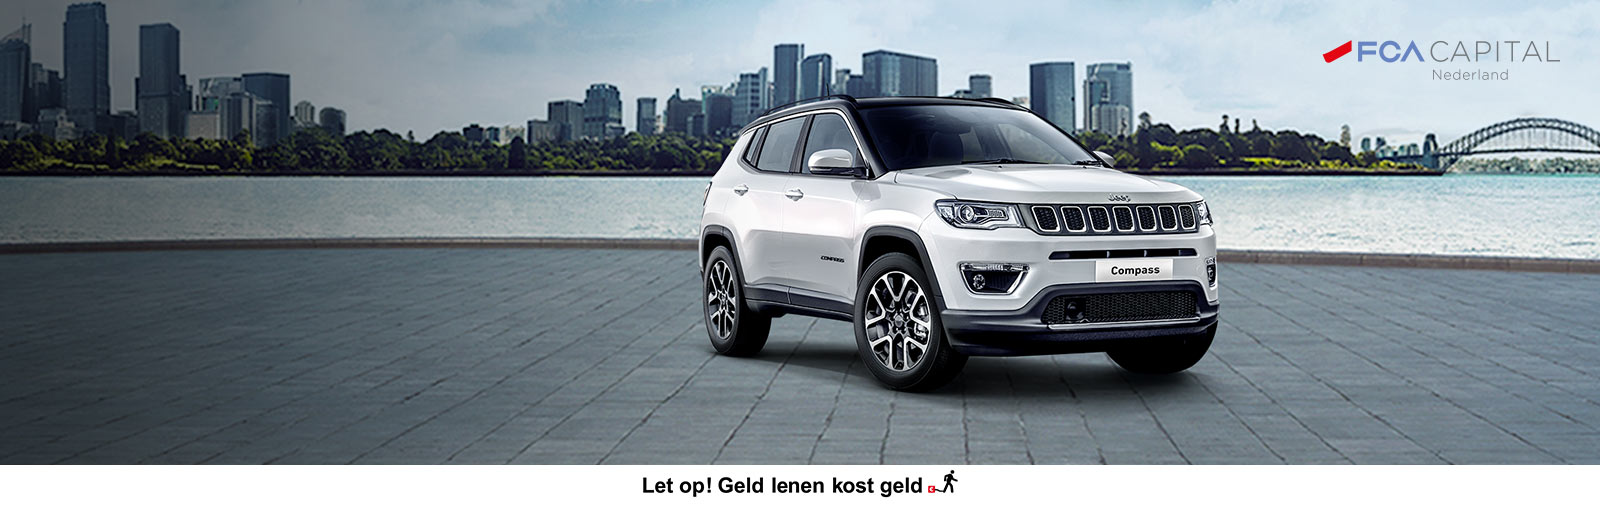 JEEP<sub>&reg;</sub>&nbsp;COMPASS FINANCIAL LEASE 1,99%